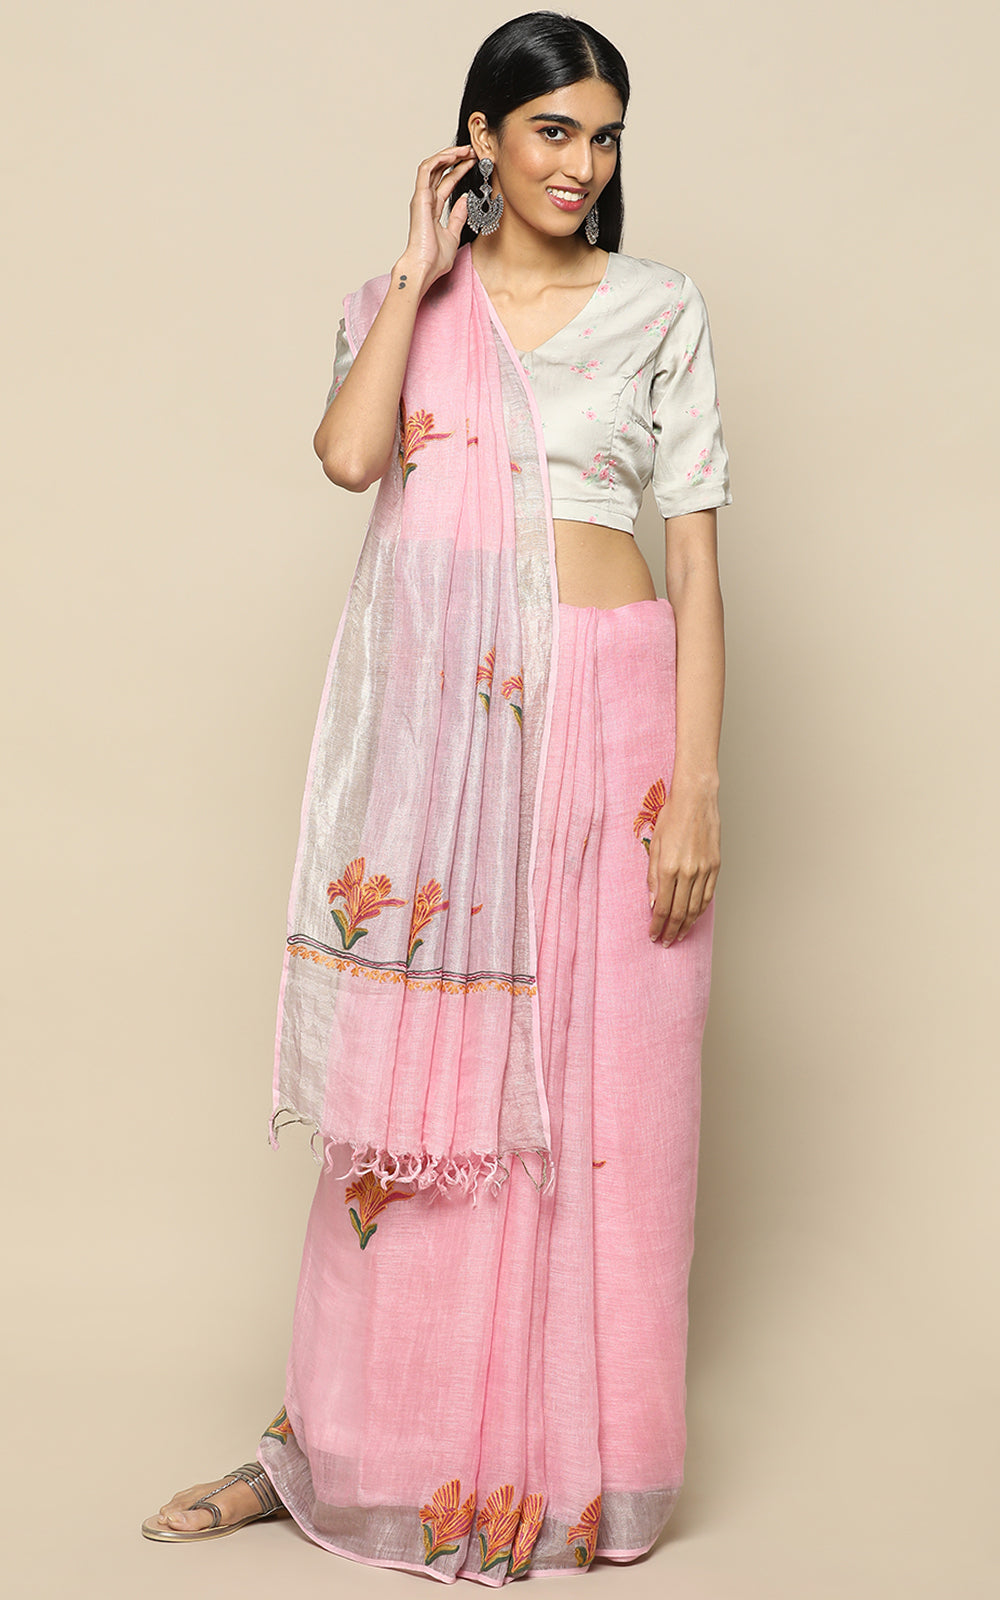 PASTEL PINK LINEN SAREE WITH KASHMIRI HAND EMBROIDERY